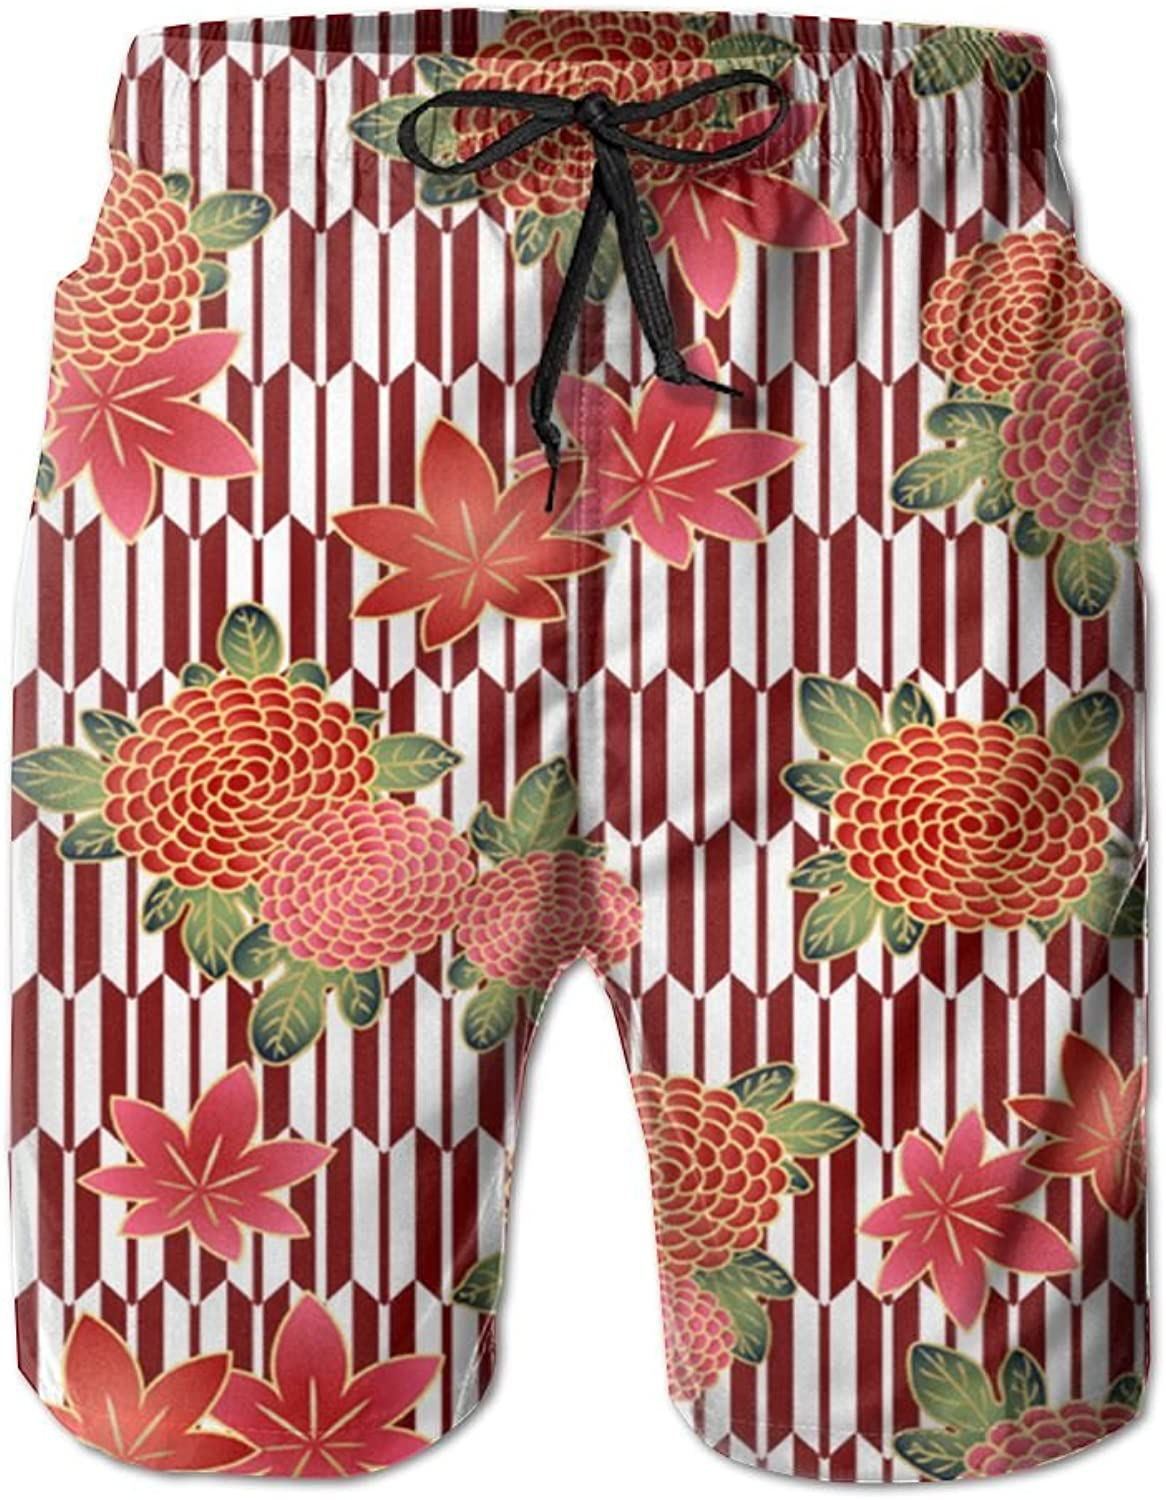 PIN Lightweight Quick Dry Beautiful Flowers Beach Shorts Swim Trunks Beach Pants